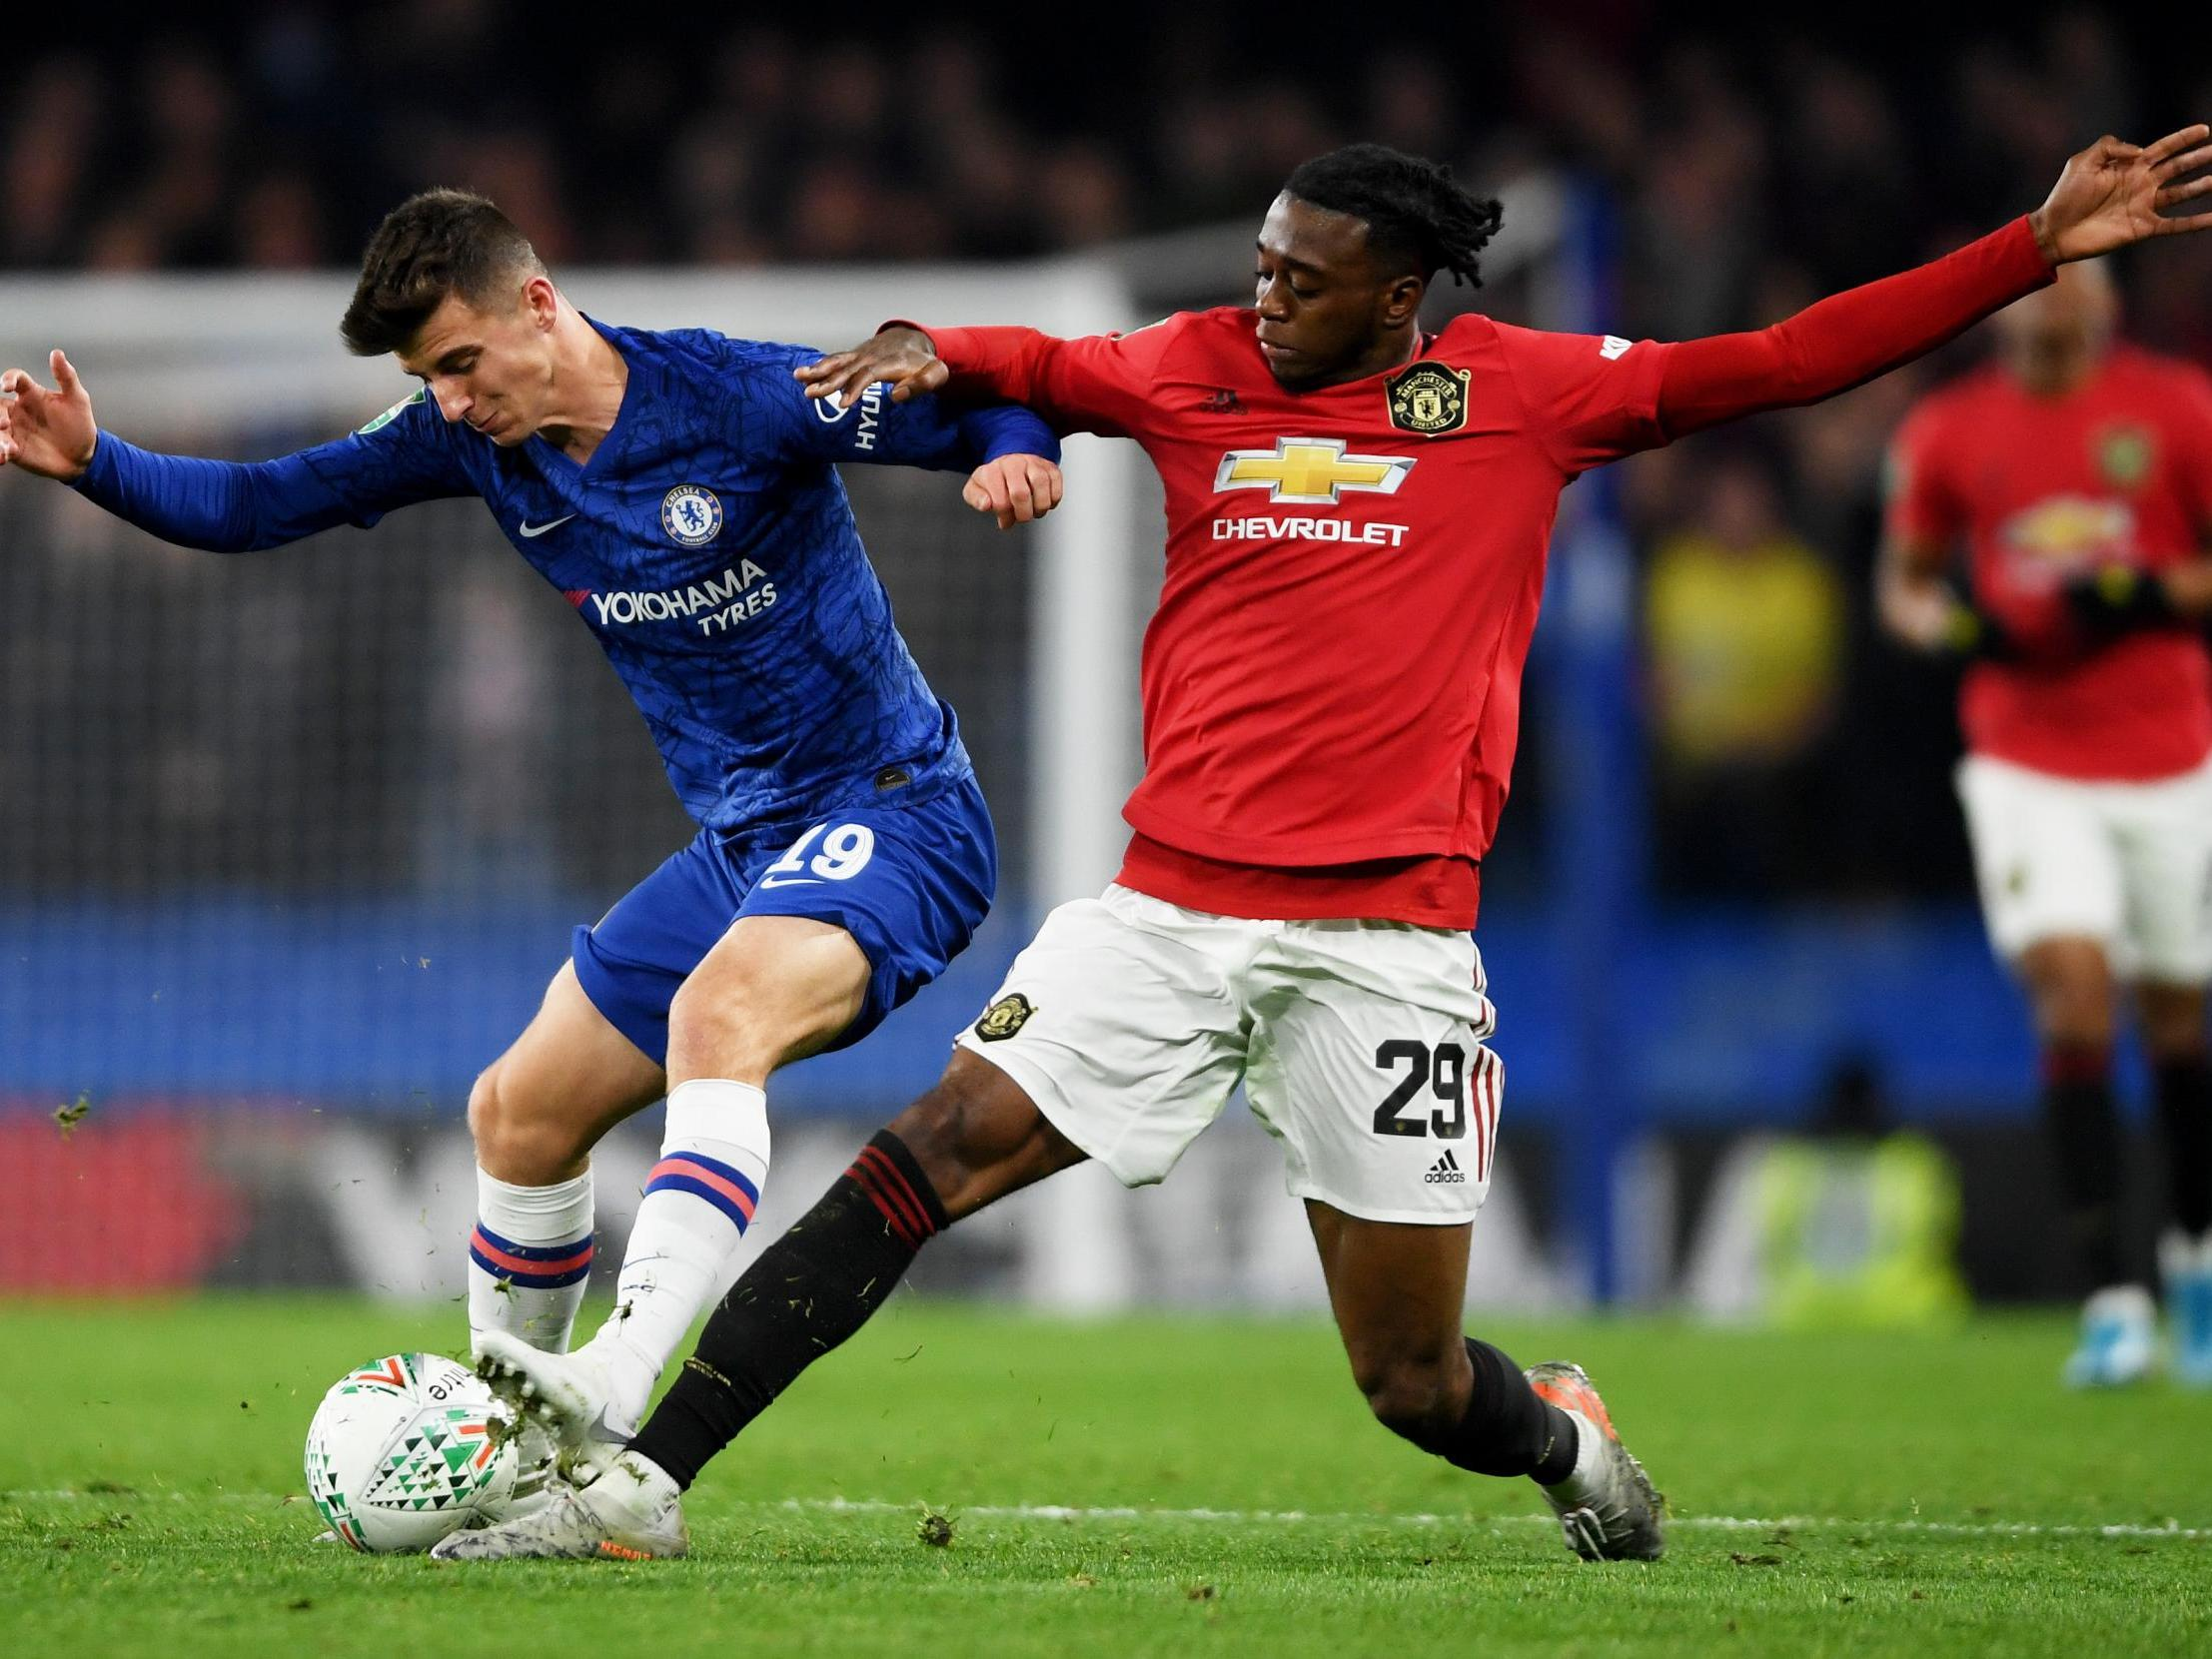 Chelsea vs Manchester United predicted line-ups: Team news ahead of Premier League fixture tonight